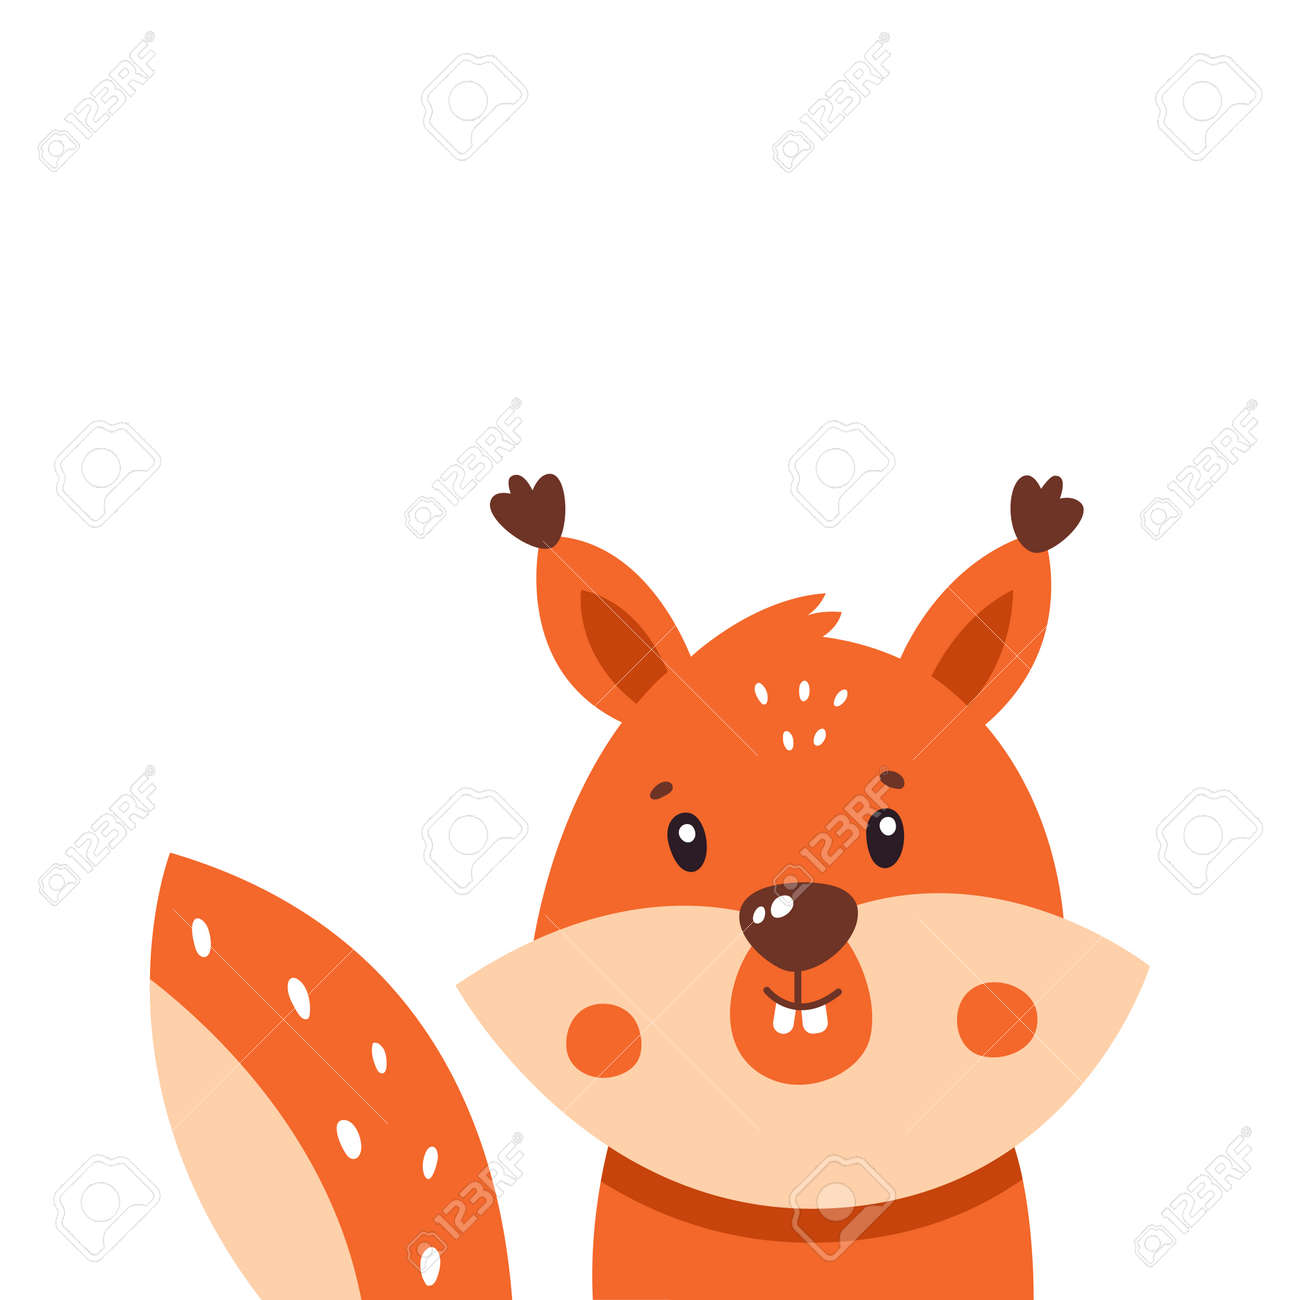 Squirrel icon. Vector illustration isolated on white background. - 169771669